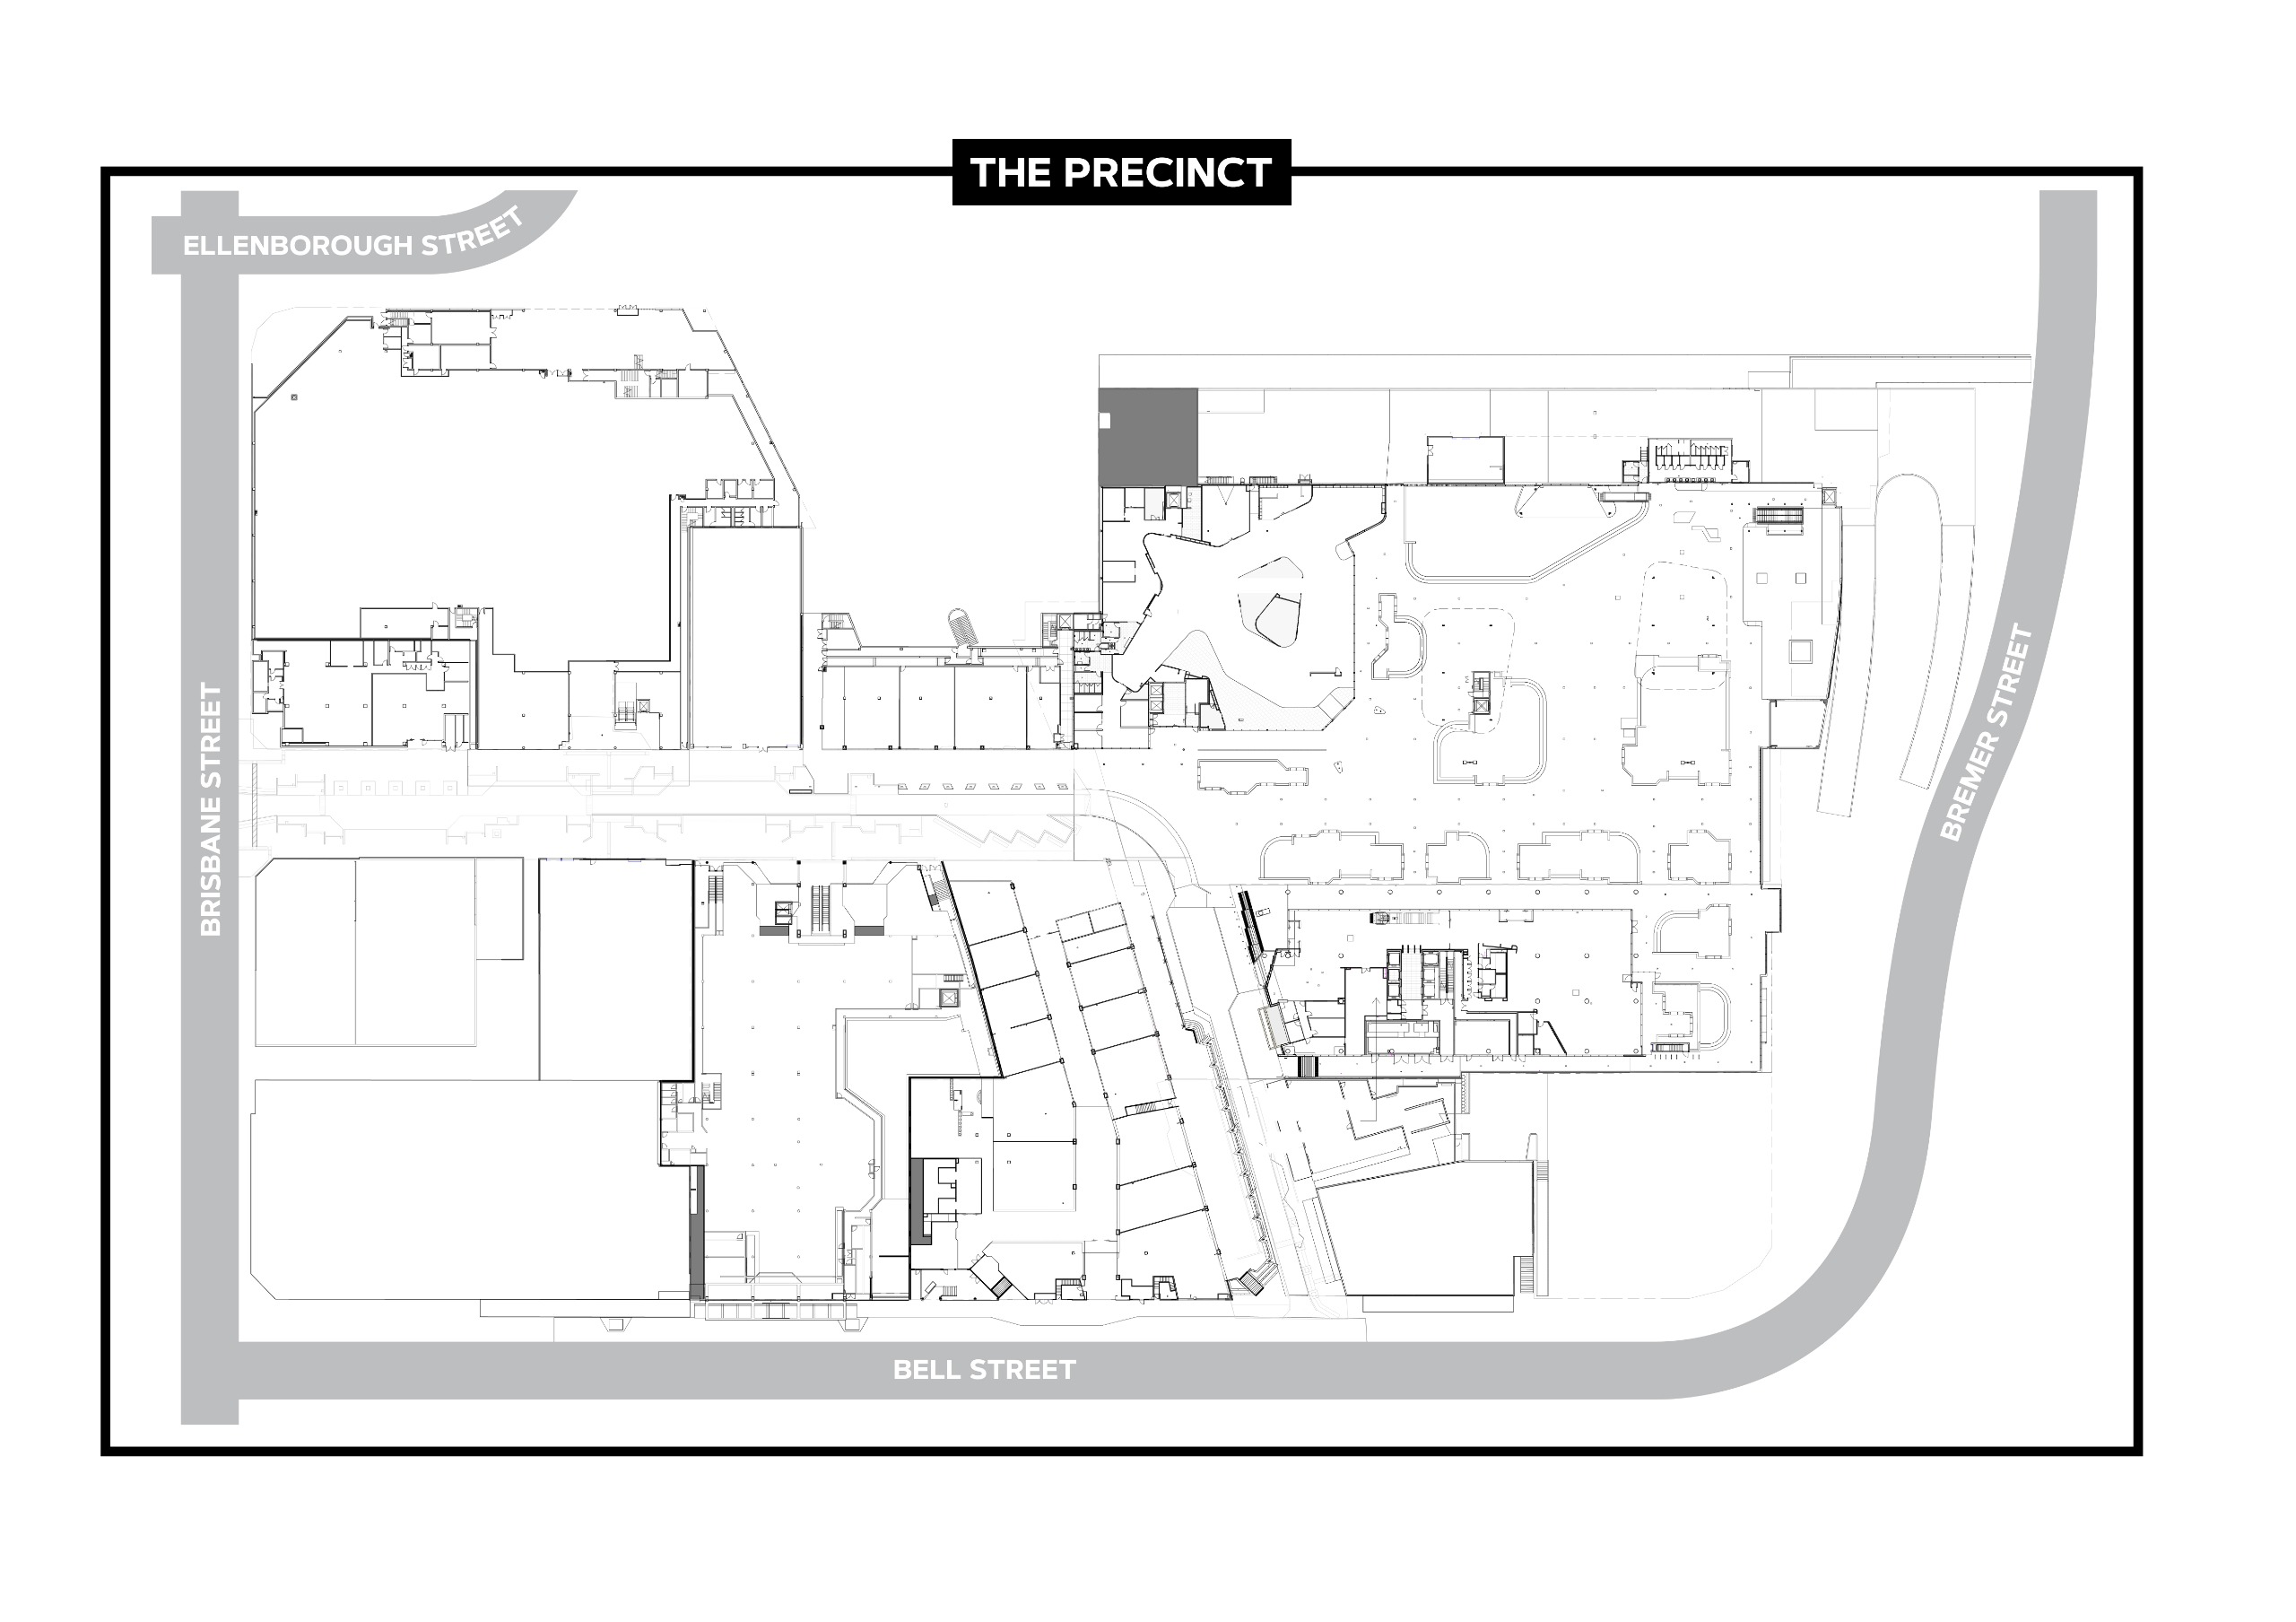 Line drawing map of the precinct to be named